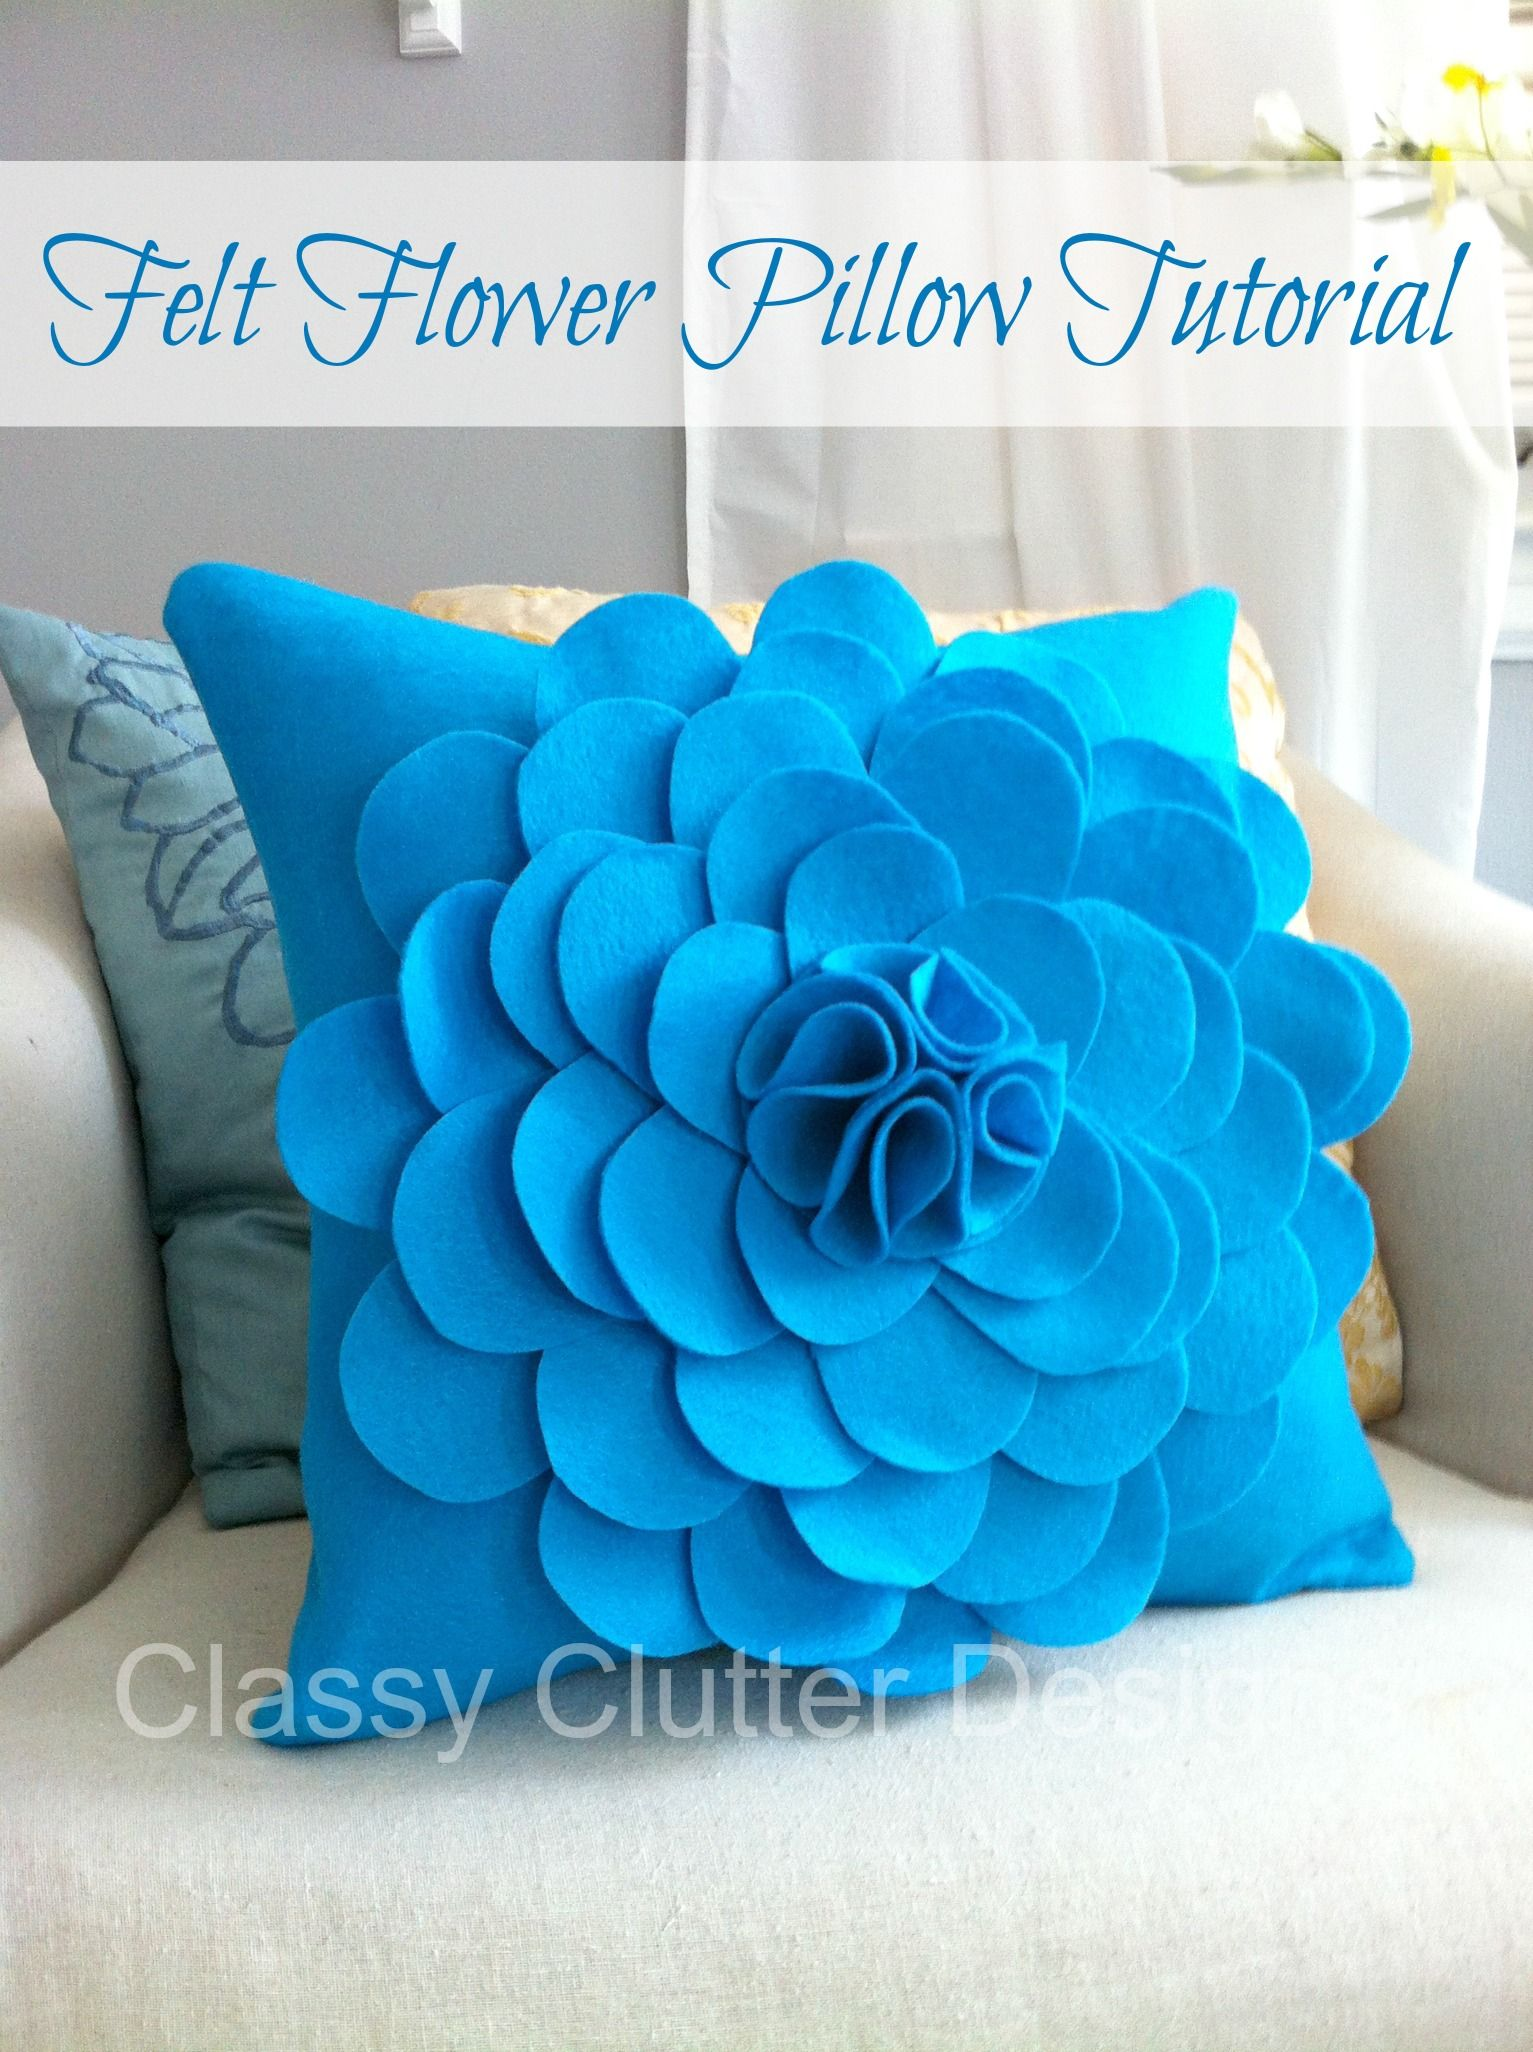 Pillow Making Ideas: How to make a Felt Flower Pillow   Felt flower pillow  Felt    ,